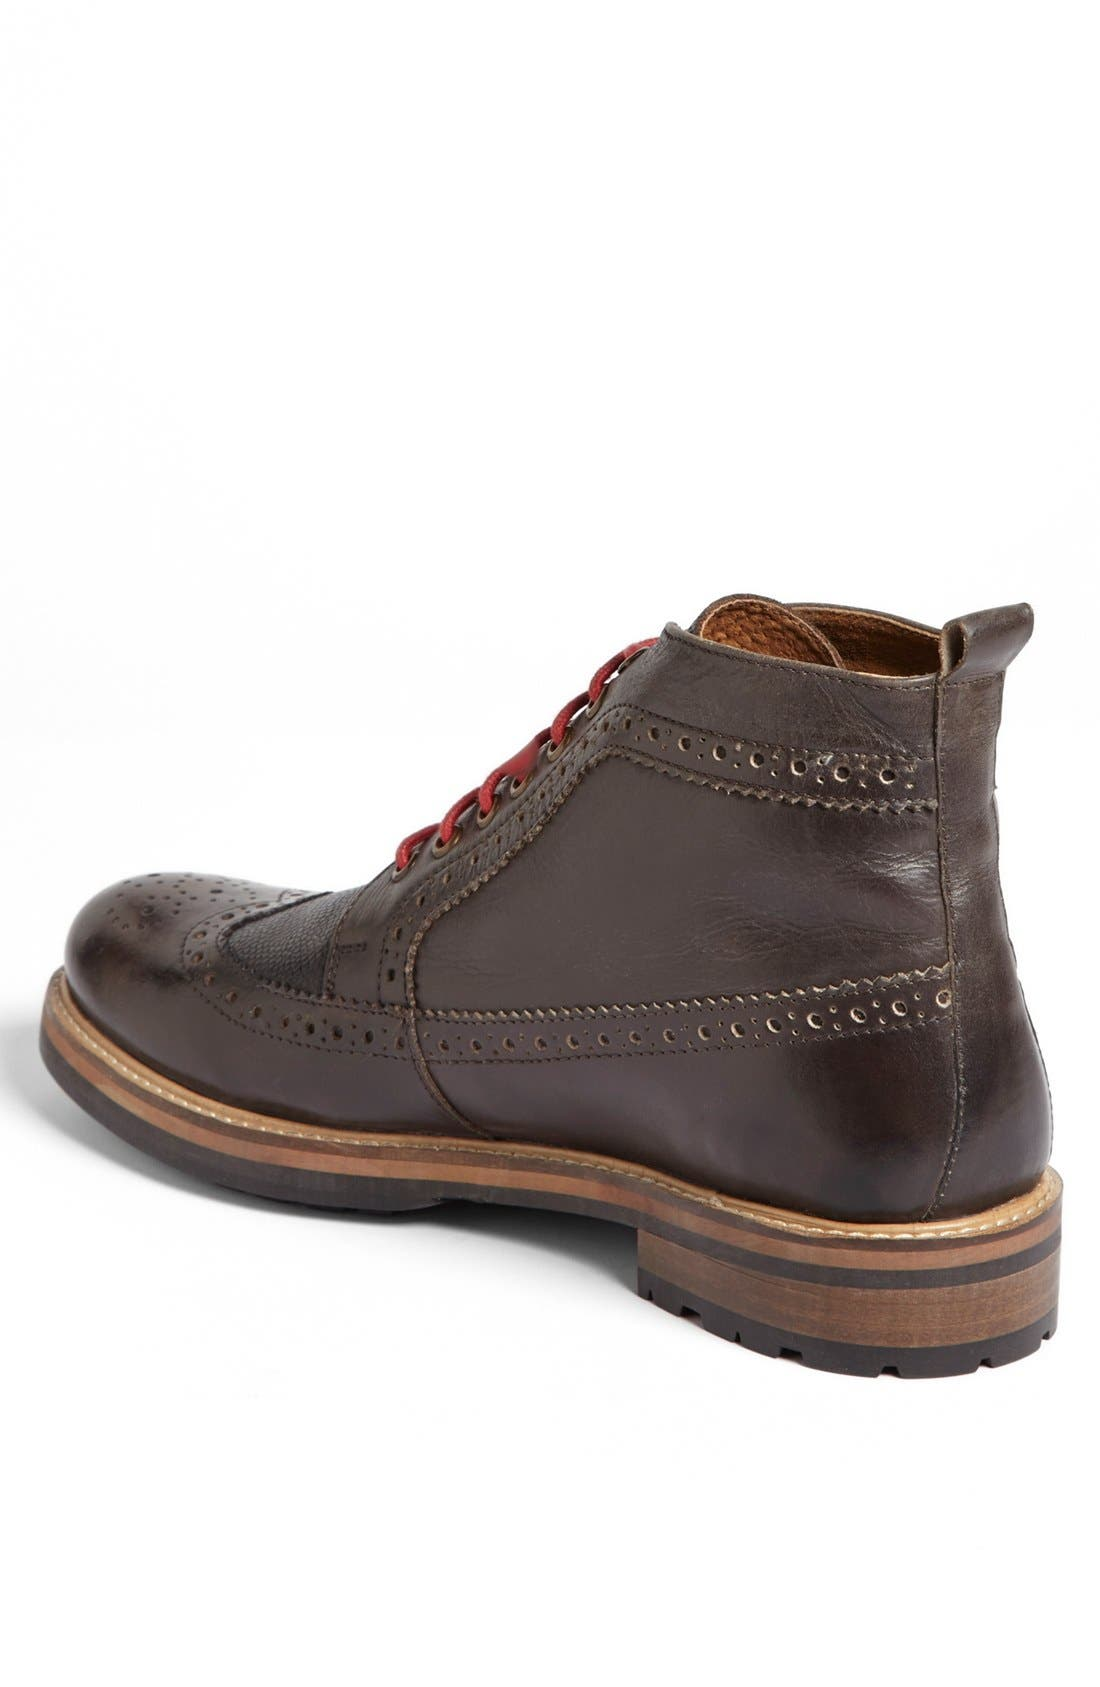 Alternate Image 2  - Ben Sherman 'Cranston' Boot (Men)